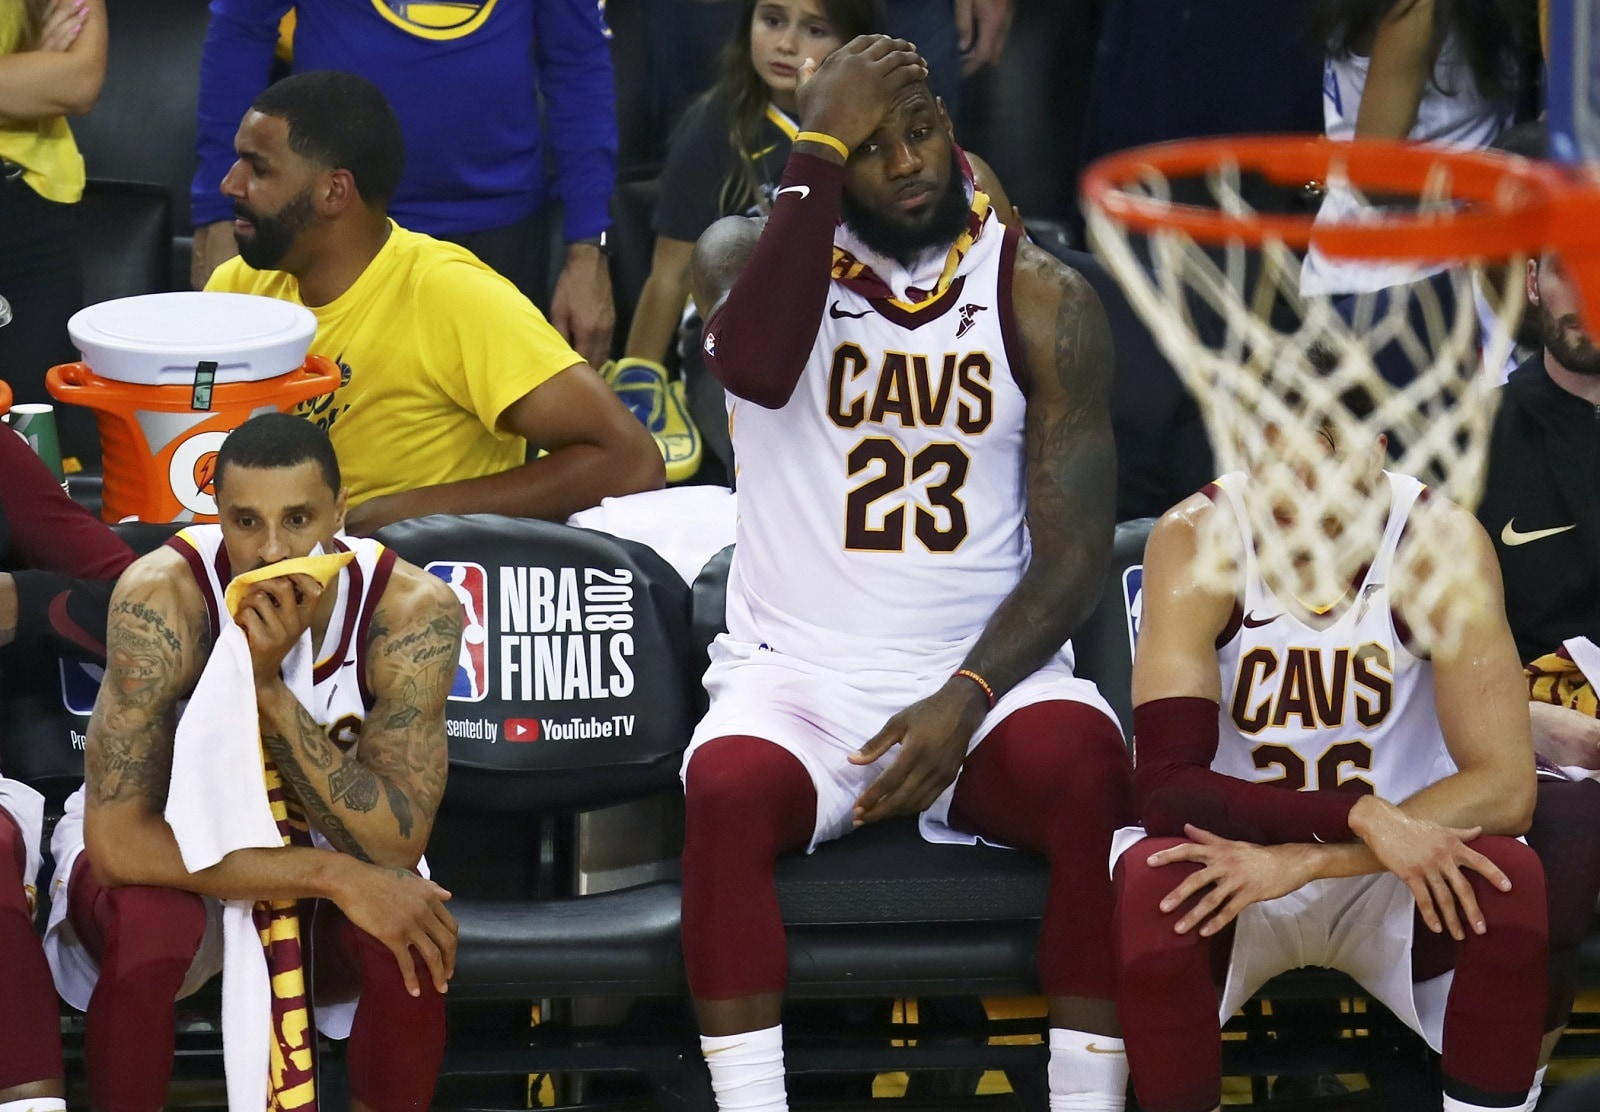 Cleveland Cavaliers forward LeBron James (23) sits on the bench between guards George Hill, left, and Kyle Korver during the second half of Game 2 of basketball's NBA Finals against the Golden State Warriors in Oakland, California, on June 3, 2018. The Warriors won 122-103. (AP Photo/Ben Margot)